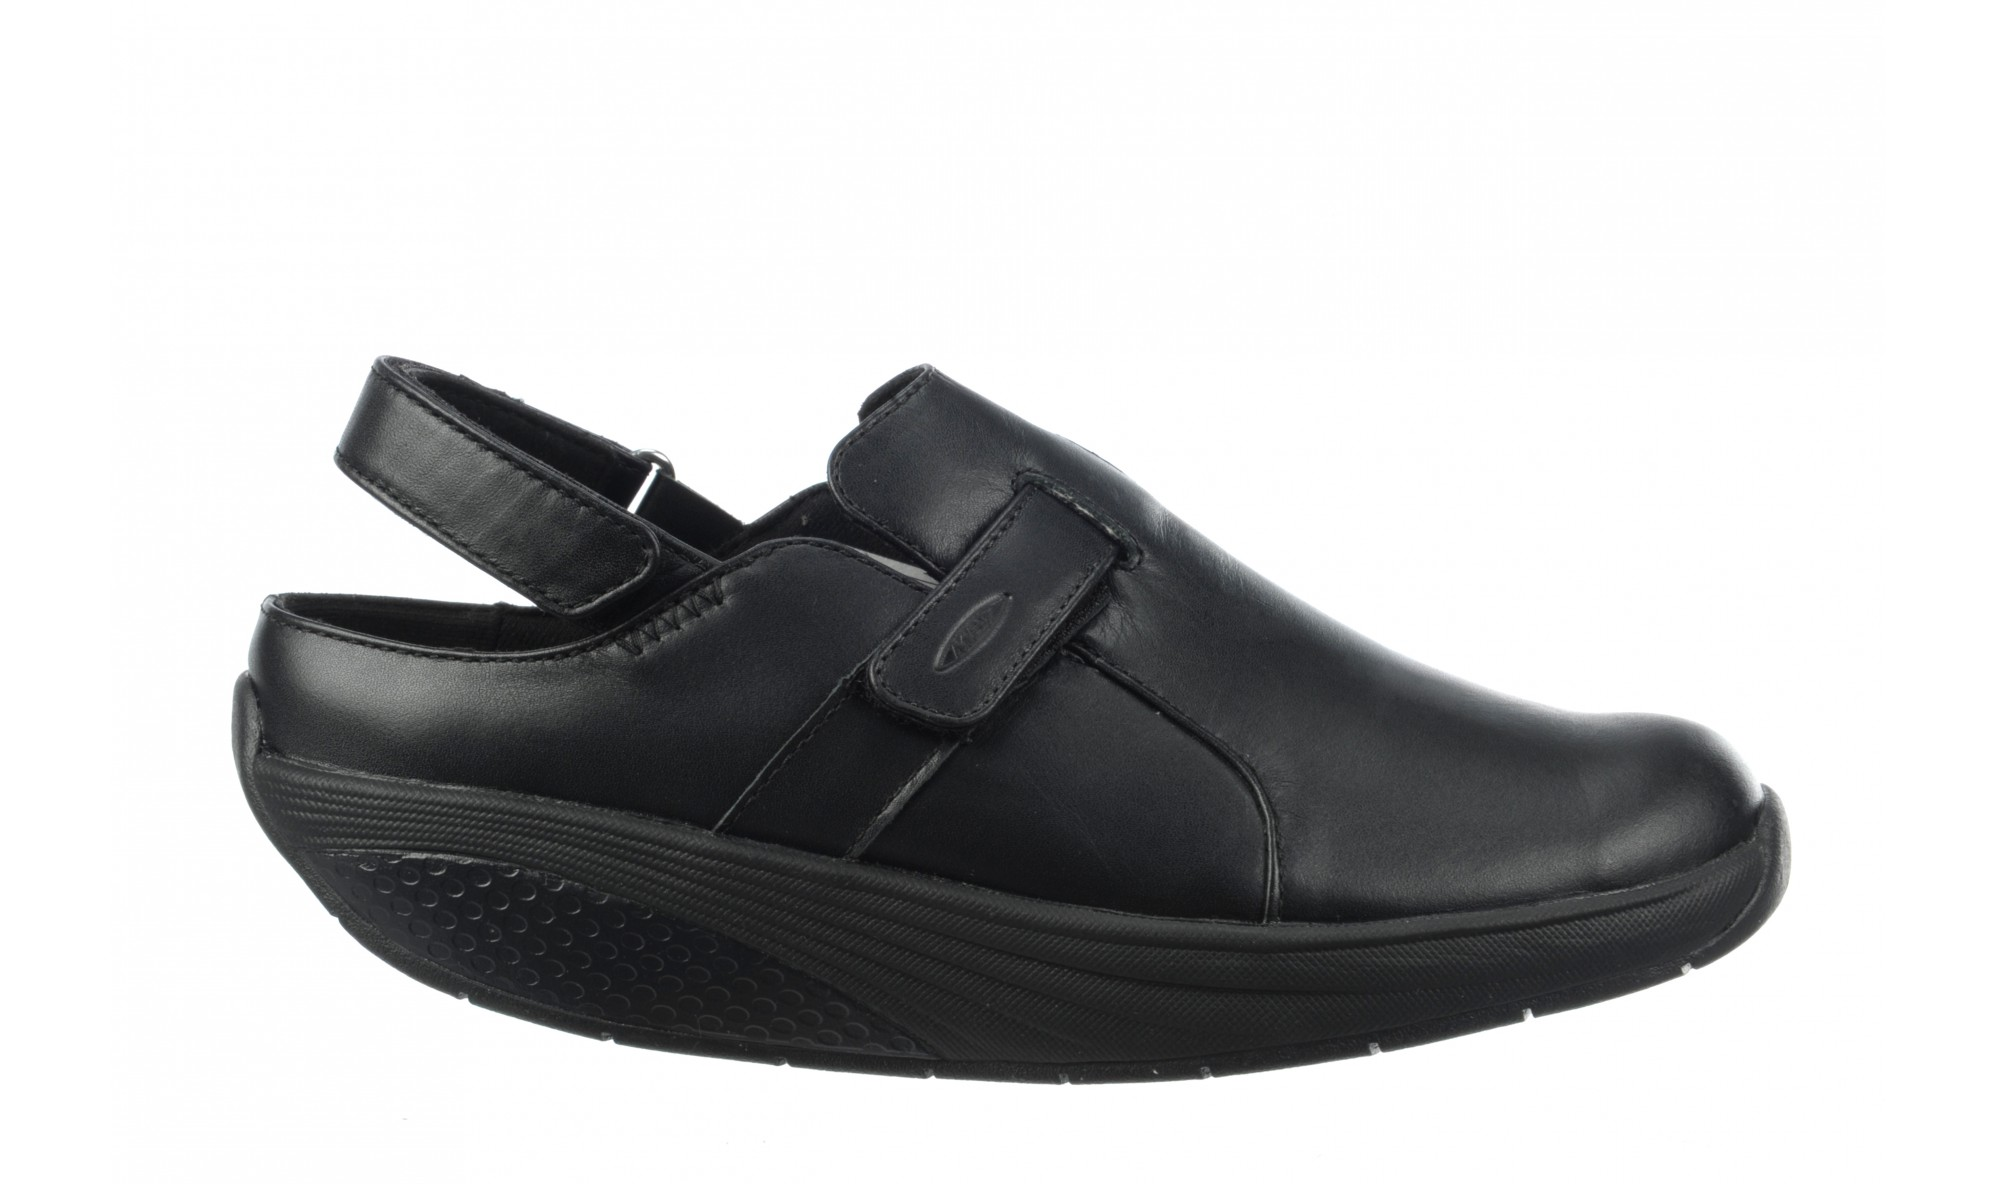 MBT Women's Flua Clog Black